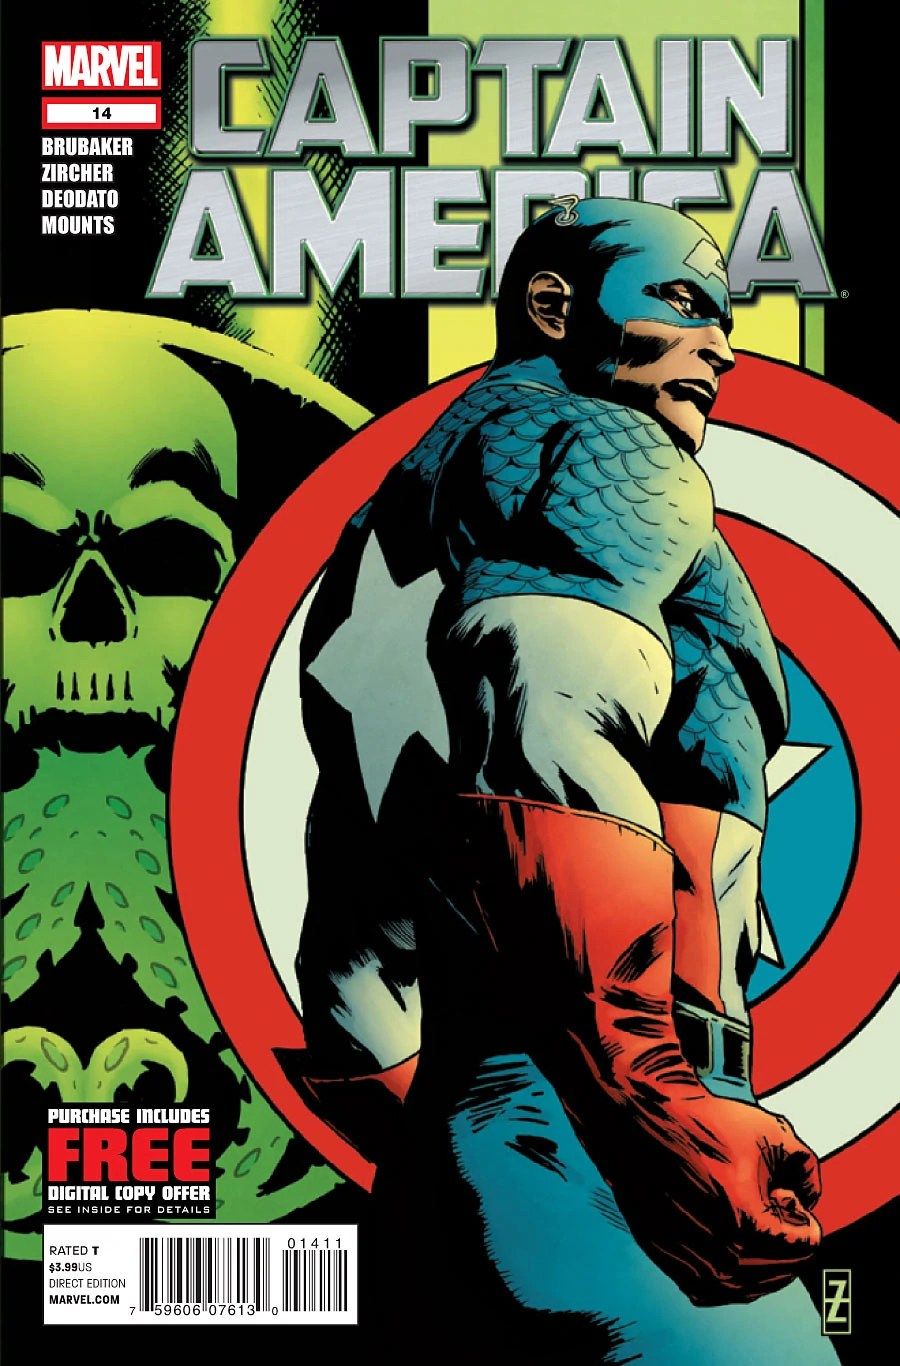 Captain America Vol 6 14  Marvel Database  FANDOM